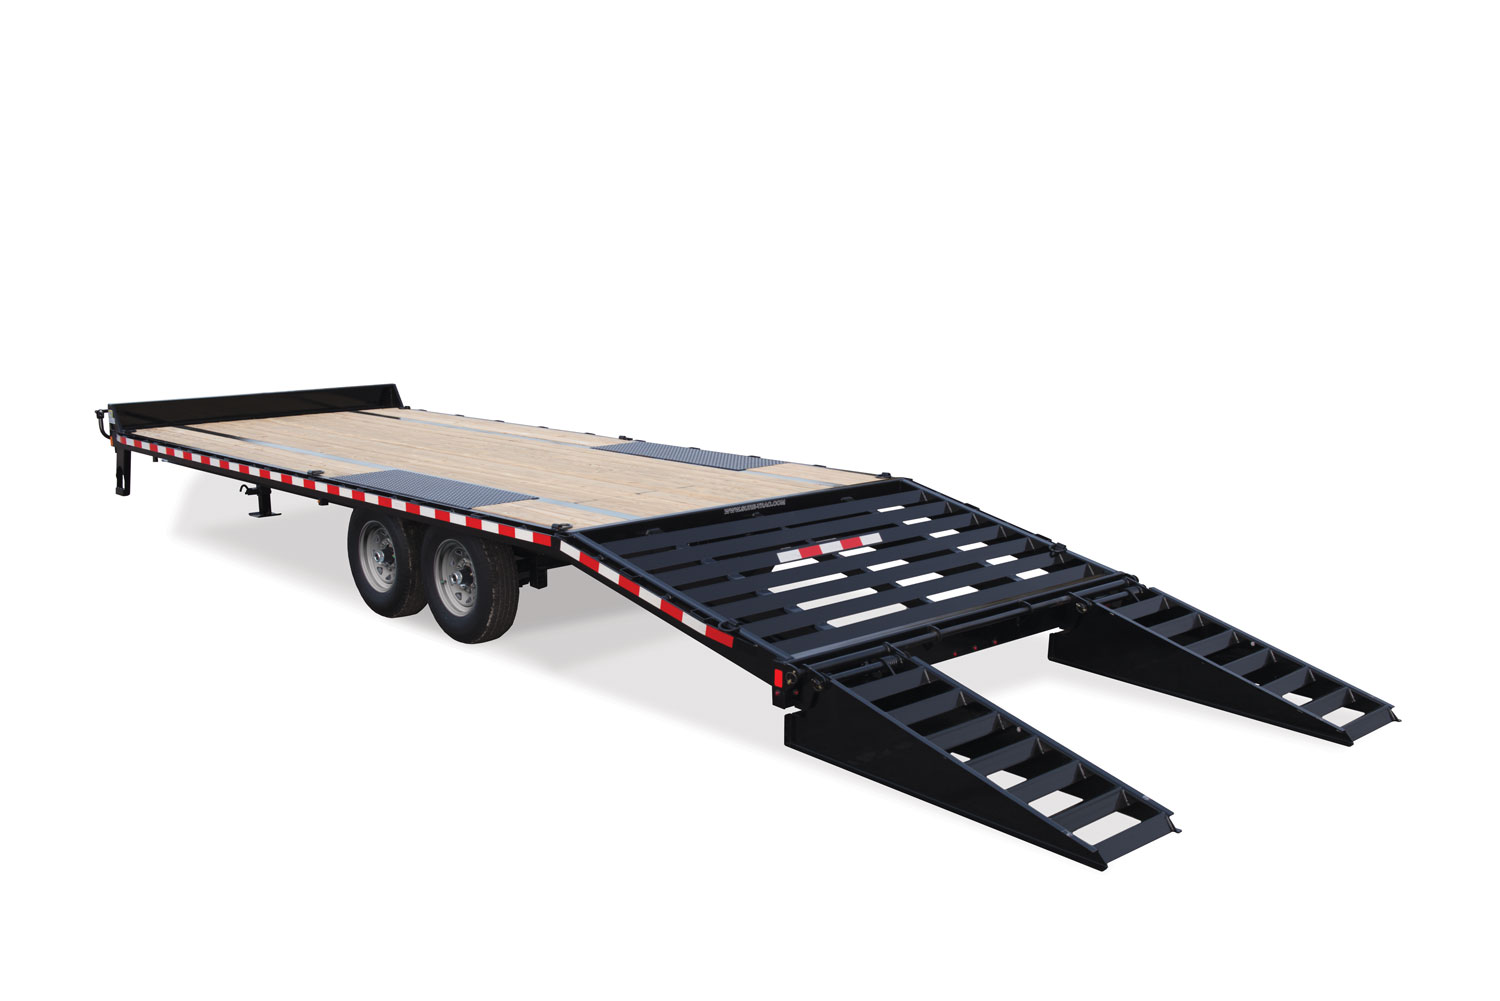 HD low Profile Beavertail Deckover